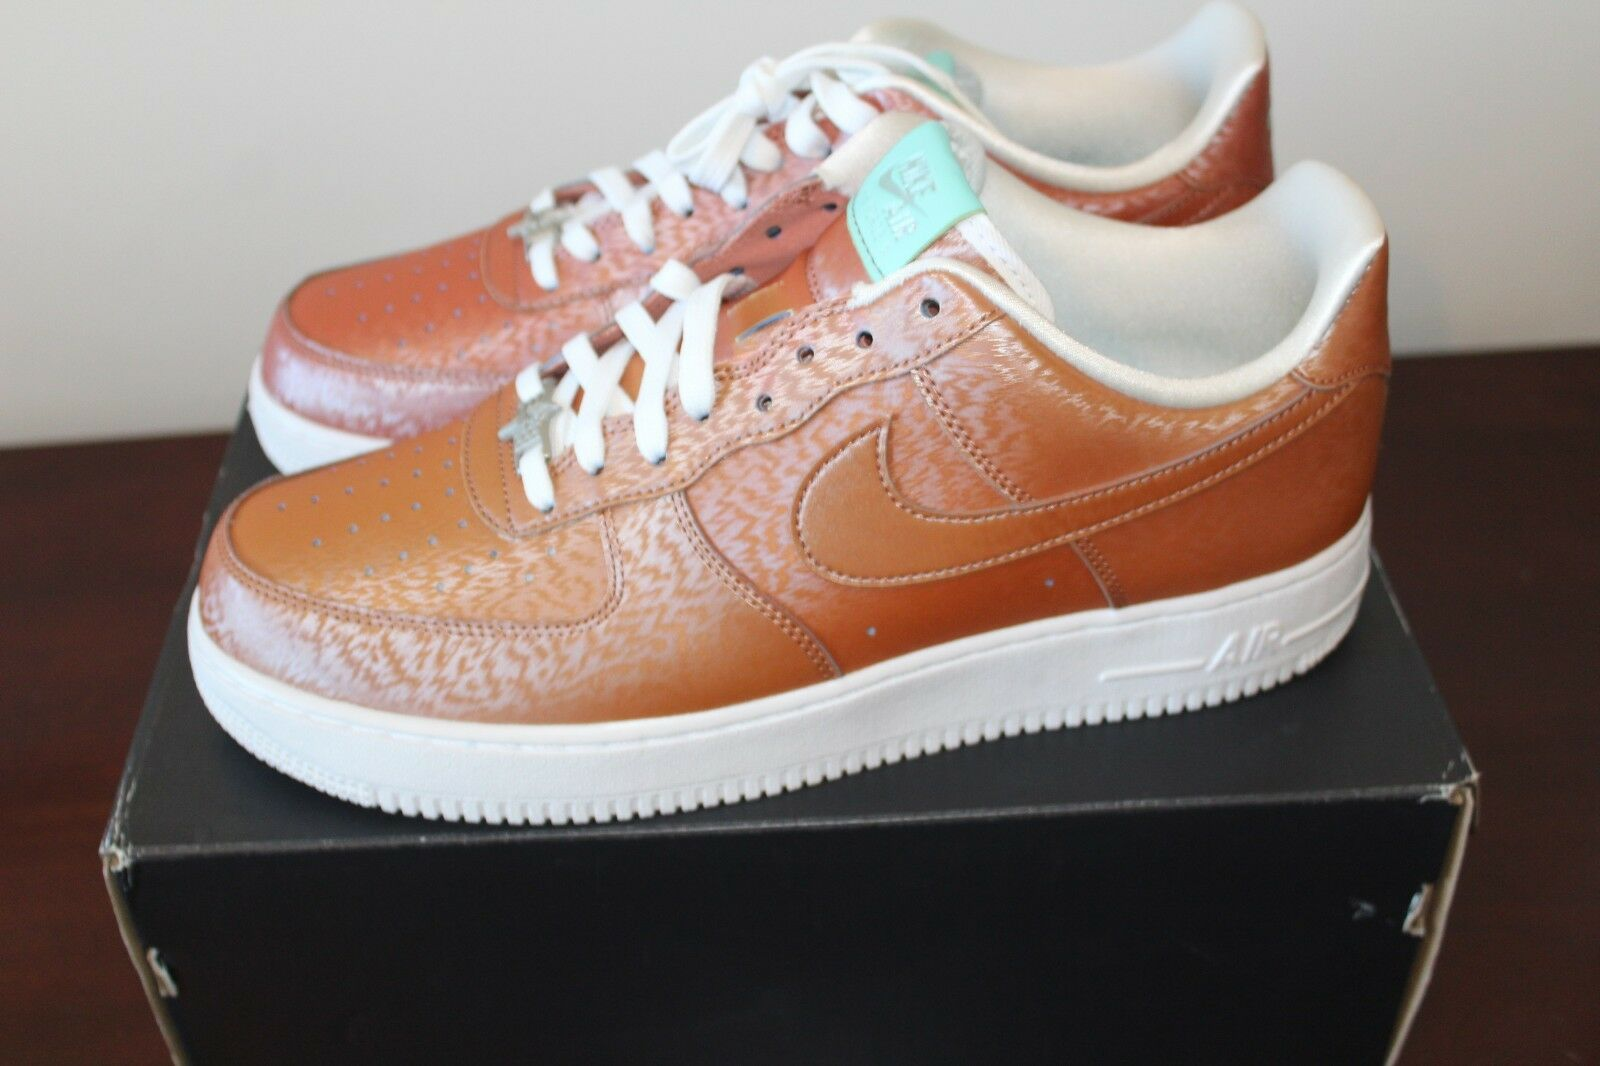 Nike Air Force 1 - Statue of Liberty   Lady Liberty  - Size 11.5 DS Brand New